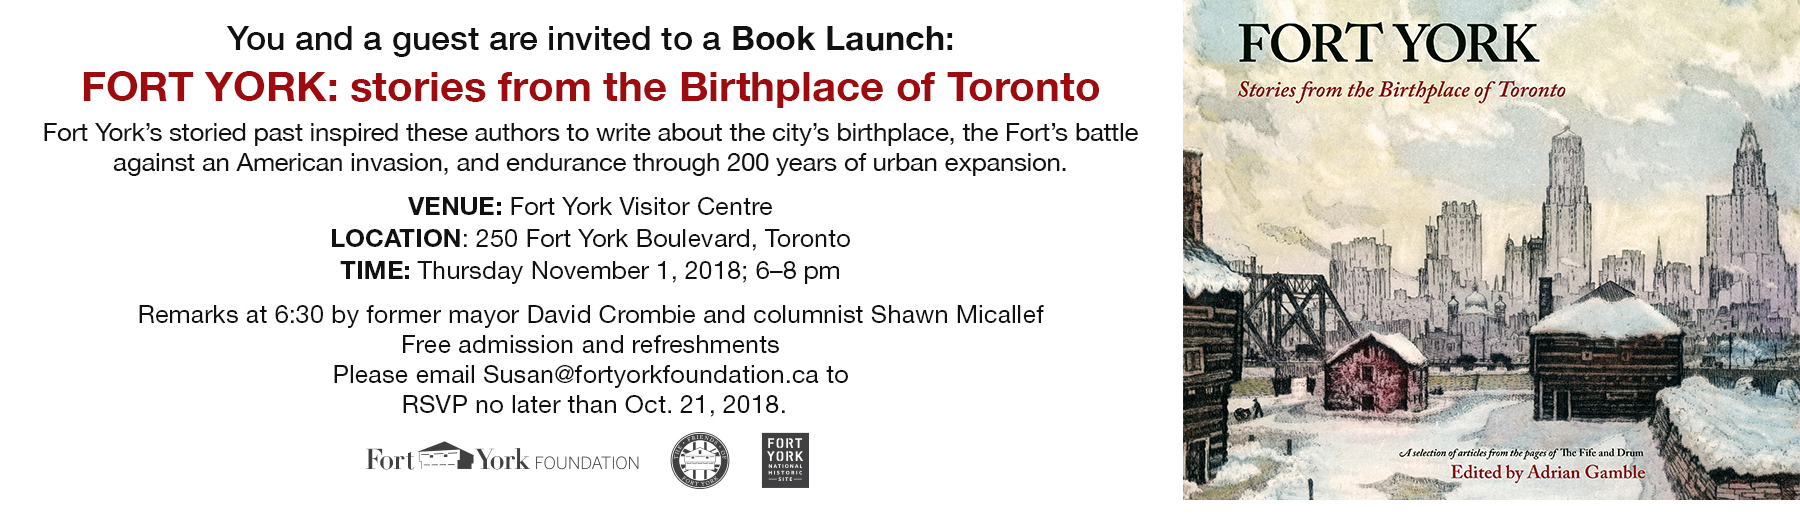 Book Launch: FORT YORK - Stories from the Birthplace of Toronto - Thu, Nov 1 @ 6:00pm